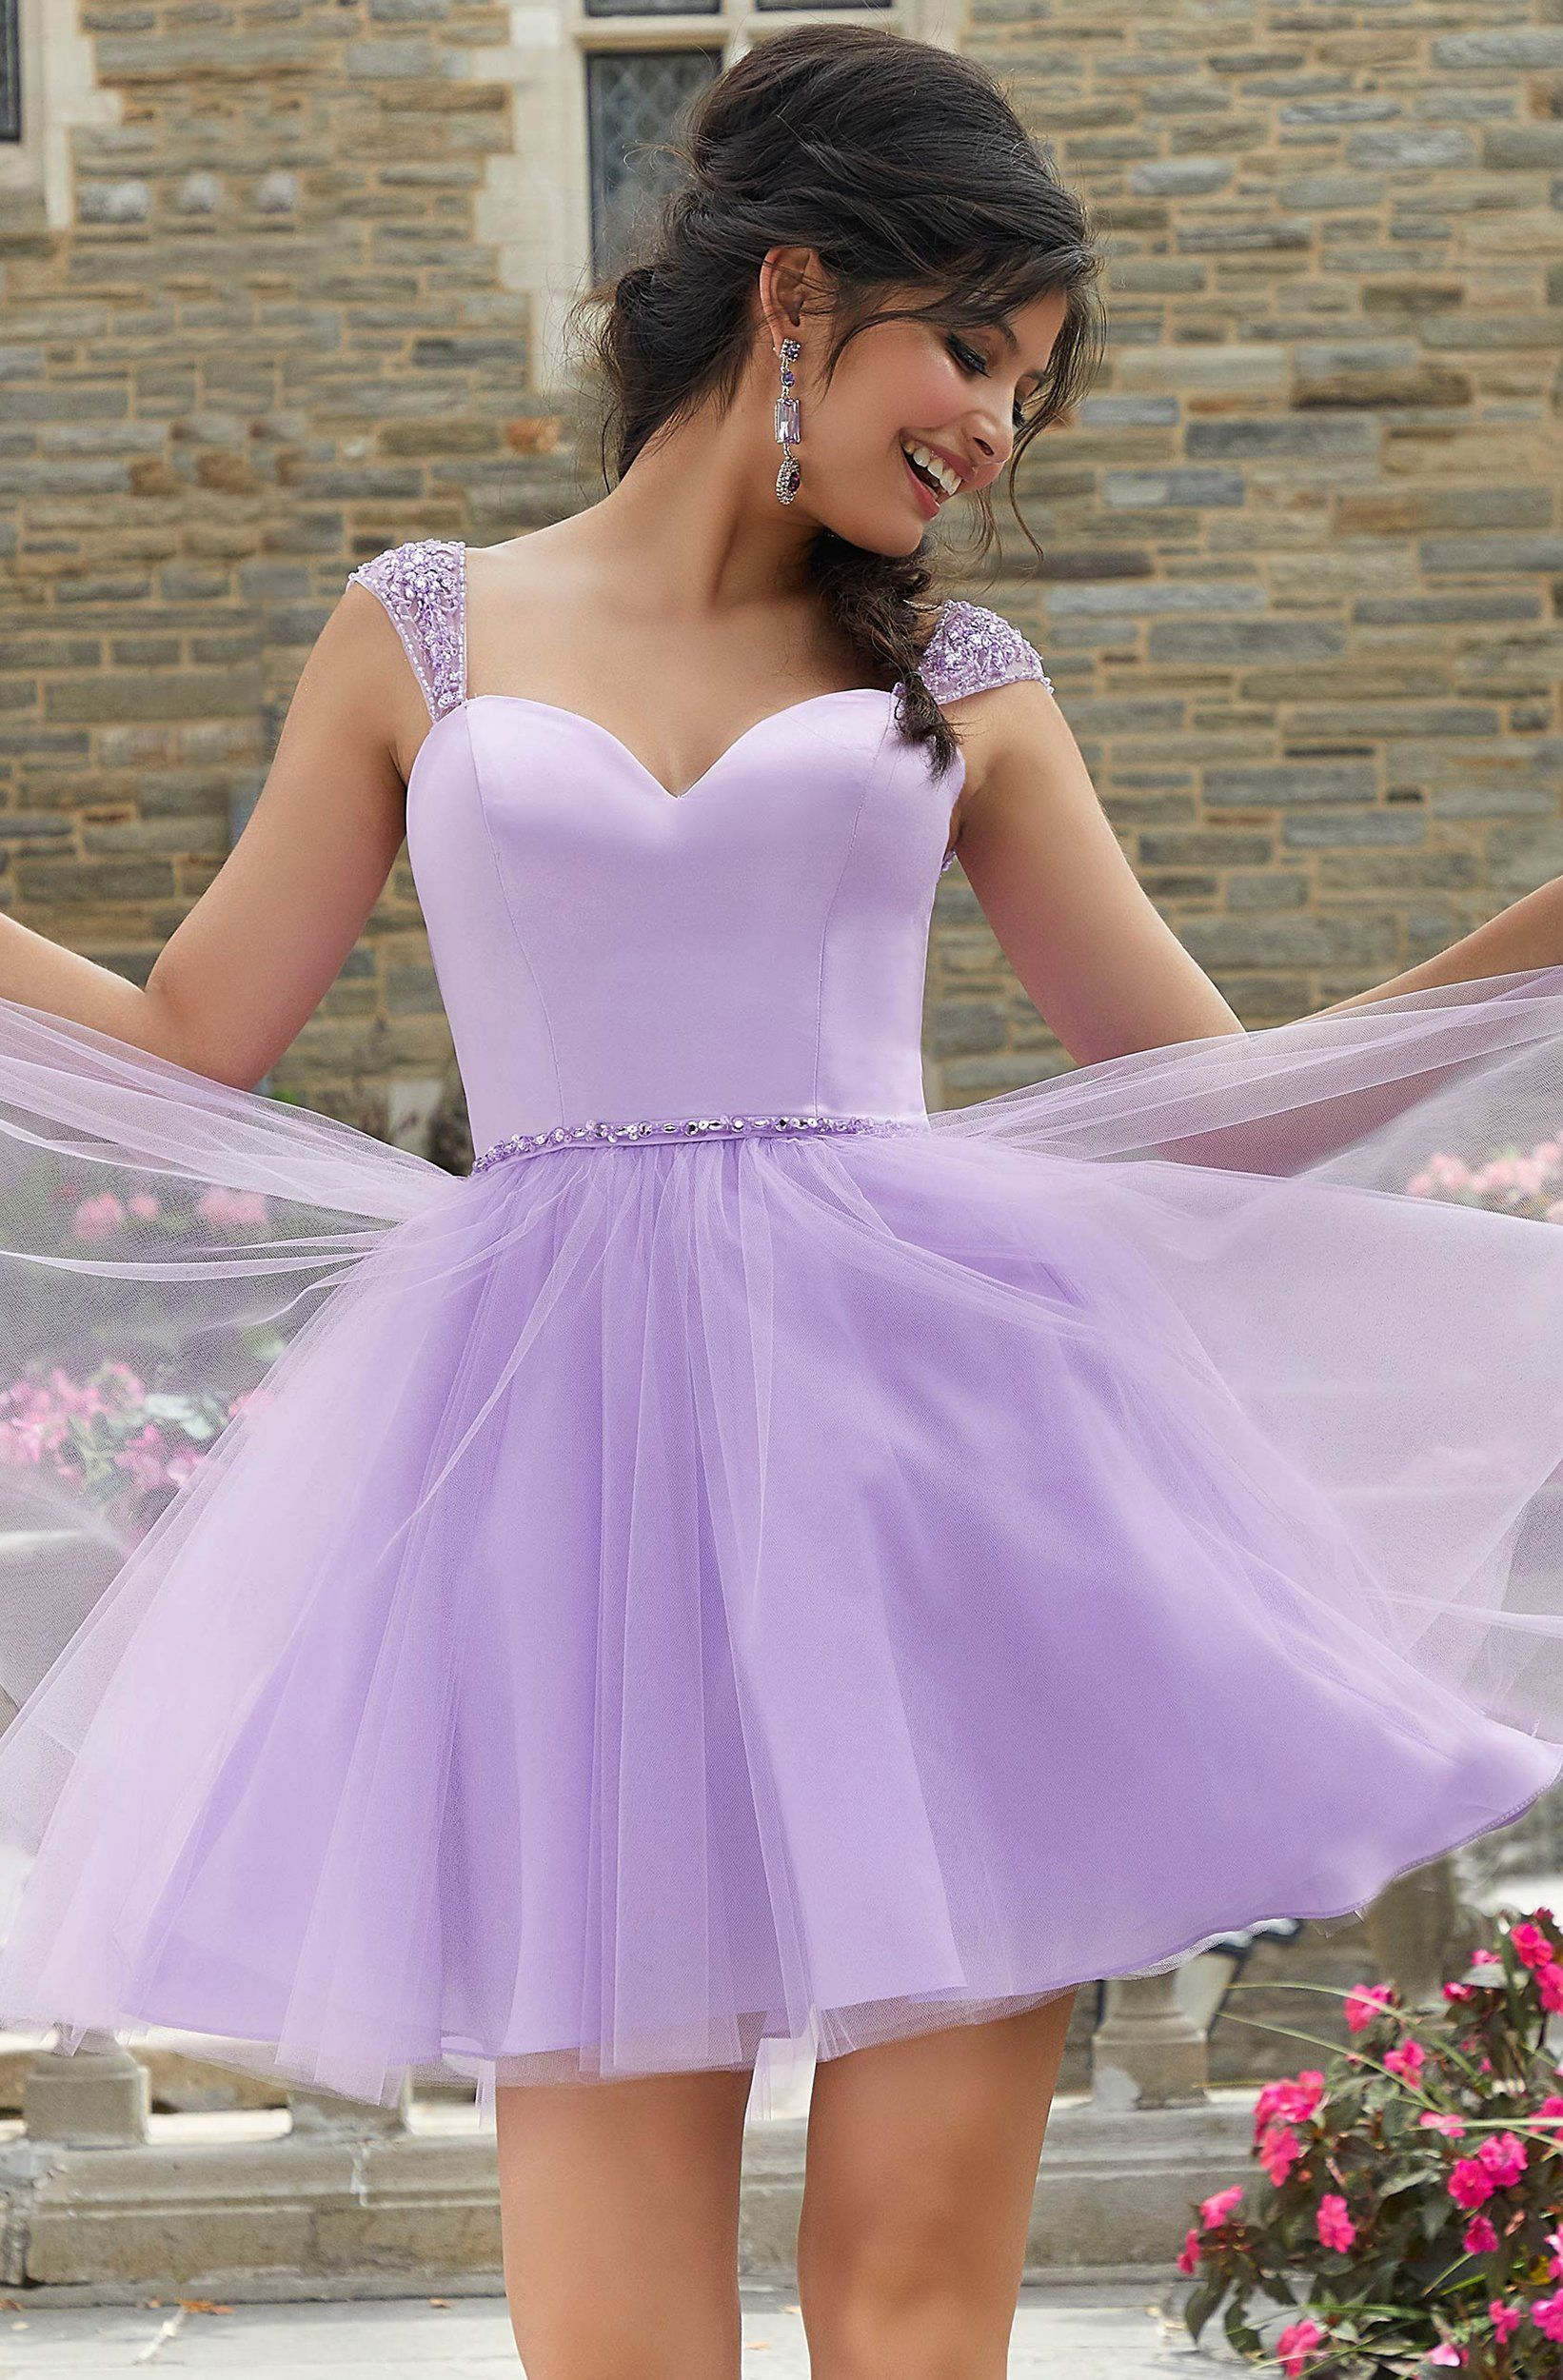 Mori Lee 9541 Beaded Satin And Tulle Sweetheart Neck Party Dress Dama Dresses Dressy Dresses Quinceanera Dama Dresses [ 2500 x 1642 Pixel ]